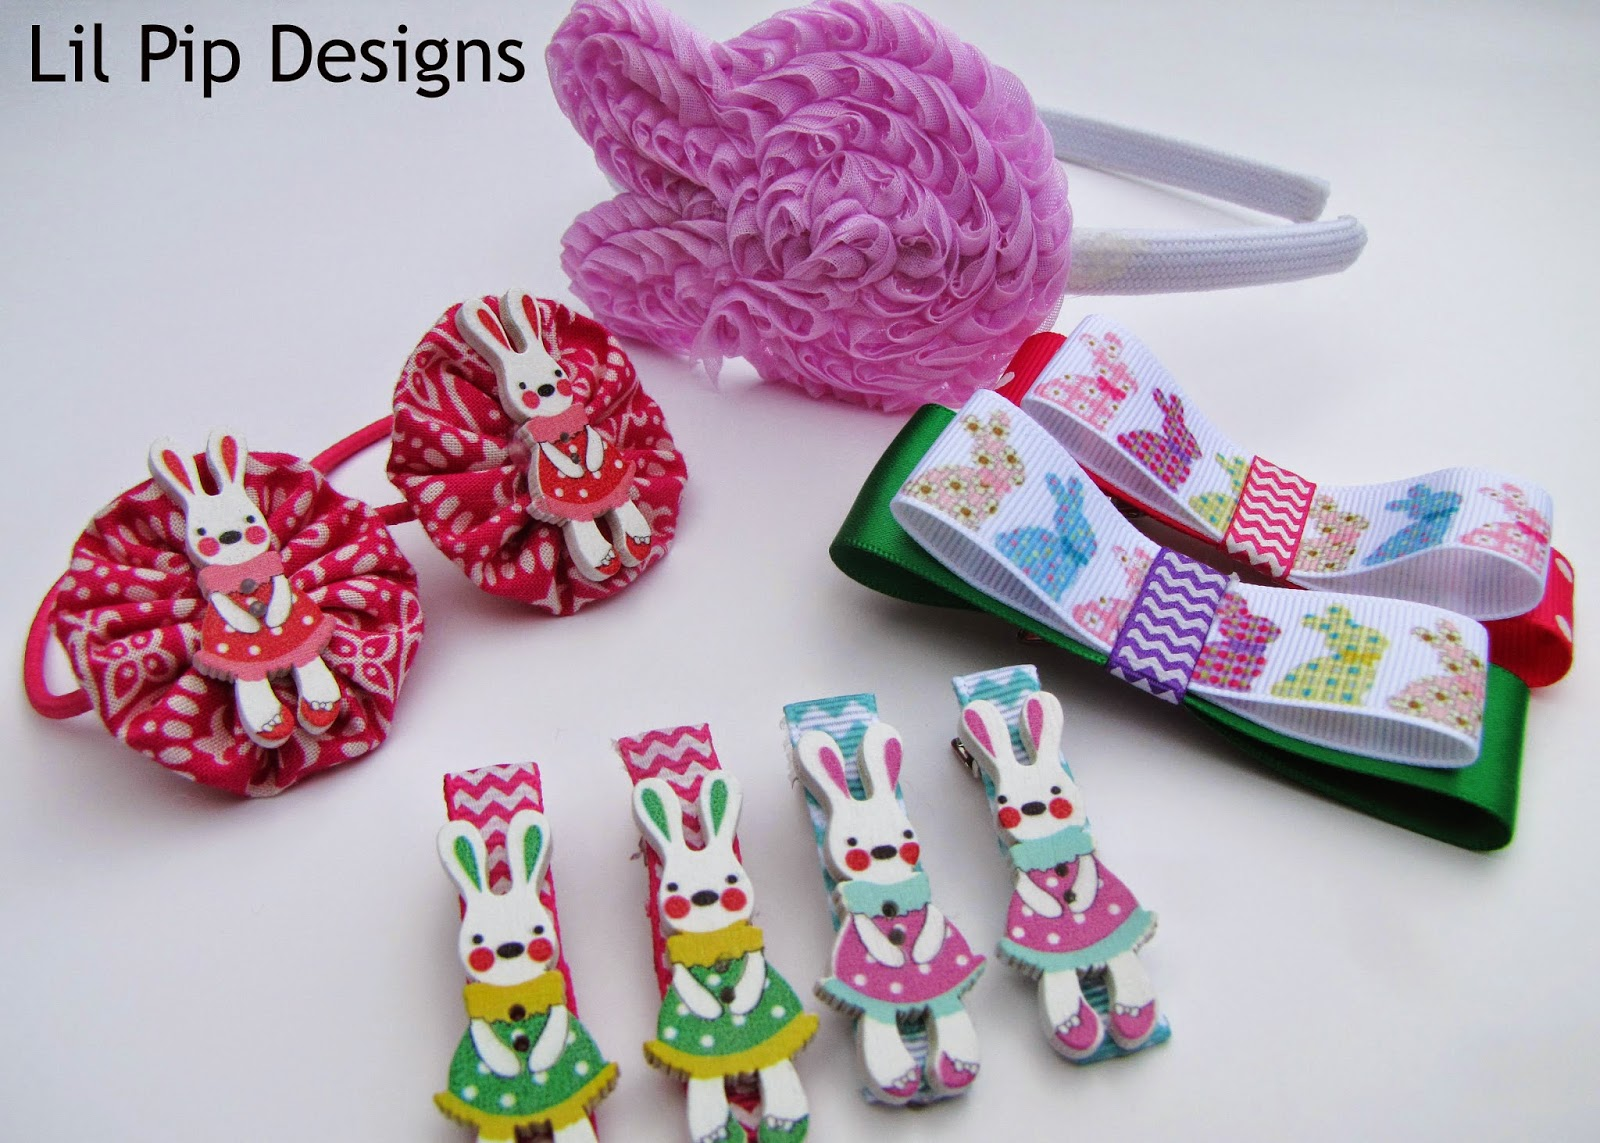 Lil pip designs handmade easter gift ideas handmade easter gift ideas negle